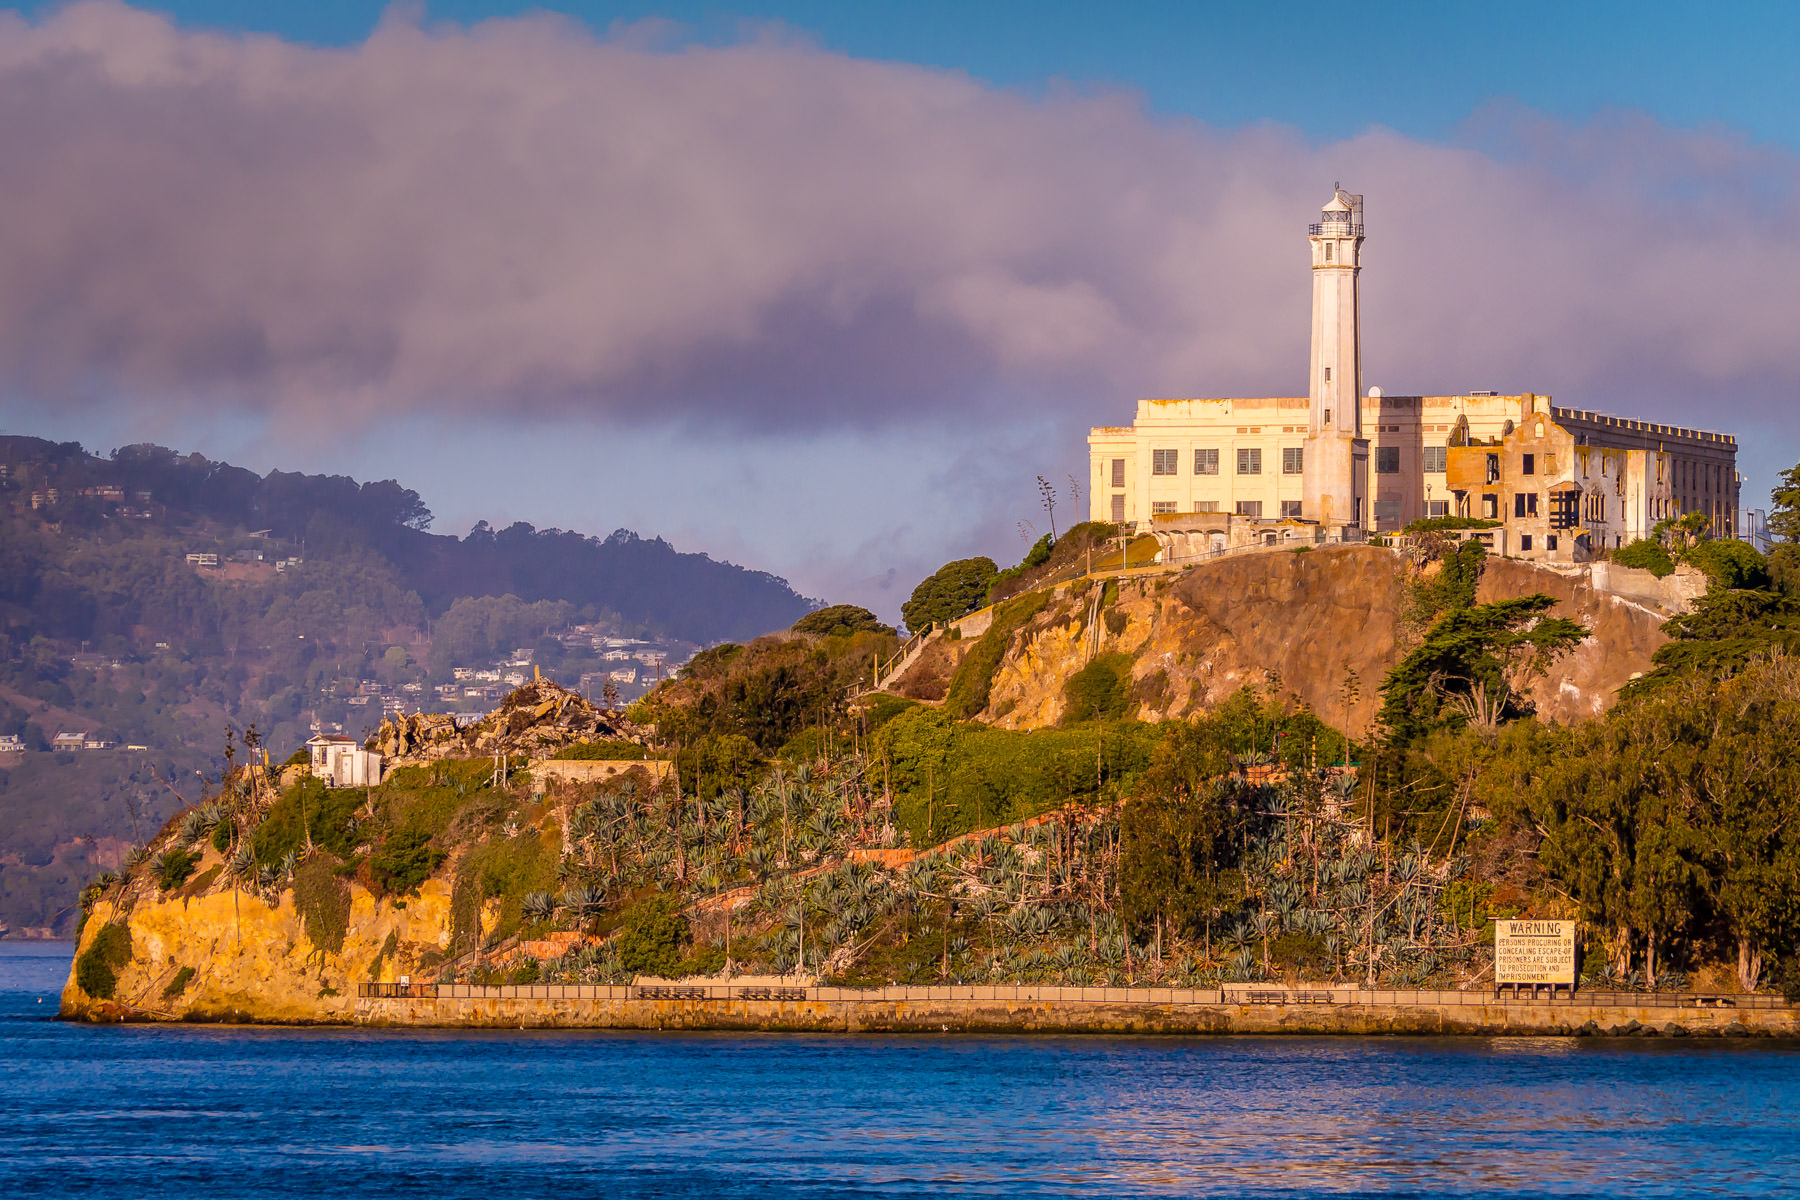 Alcatraz Federal Penitentiary rises from San Francisco Bay to catch the first light of the morning sun.